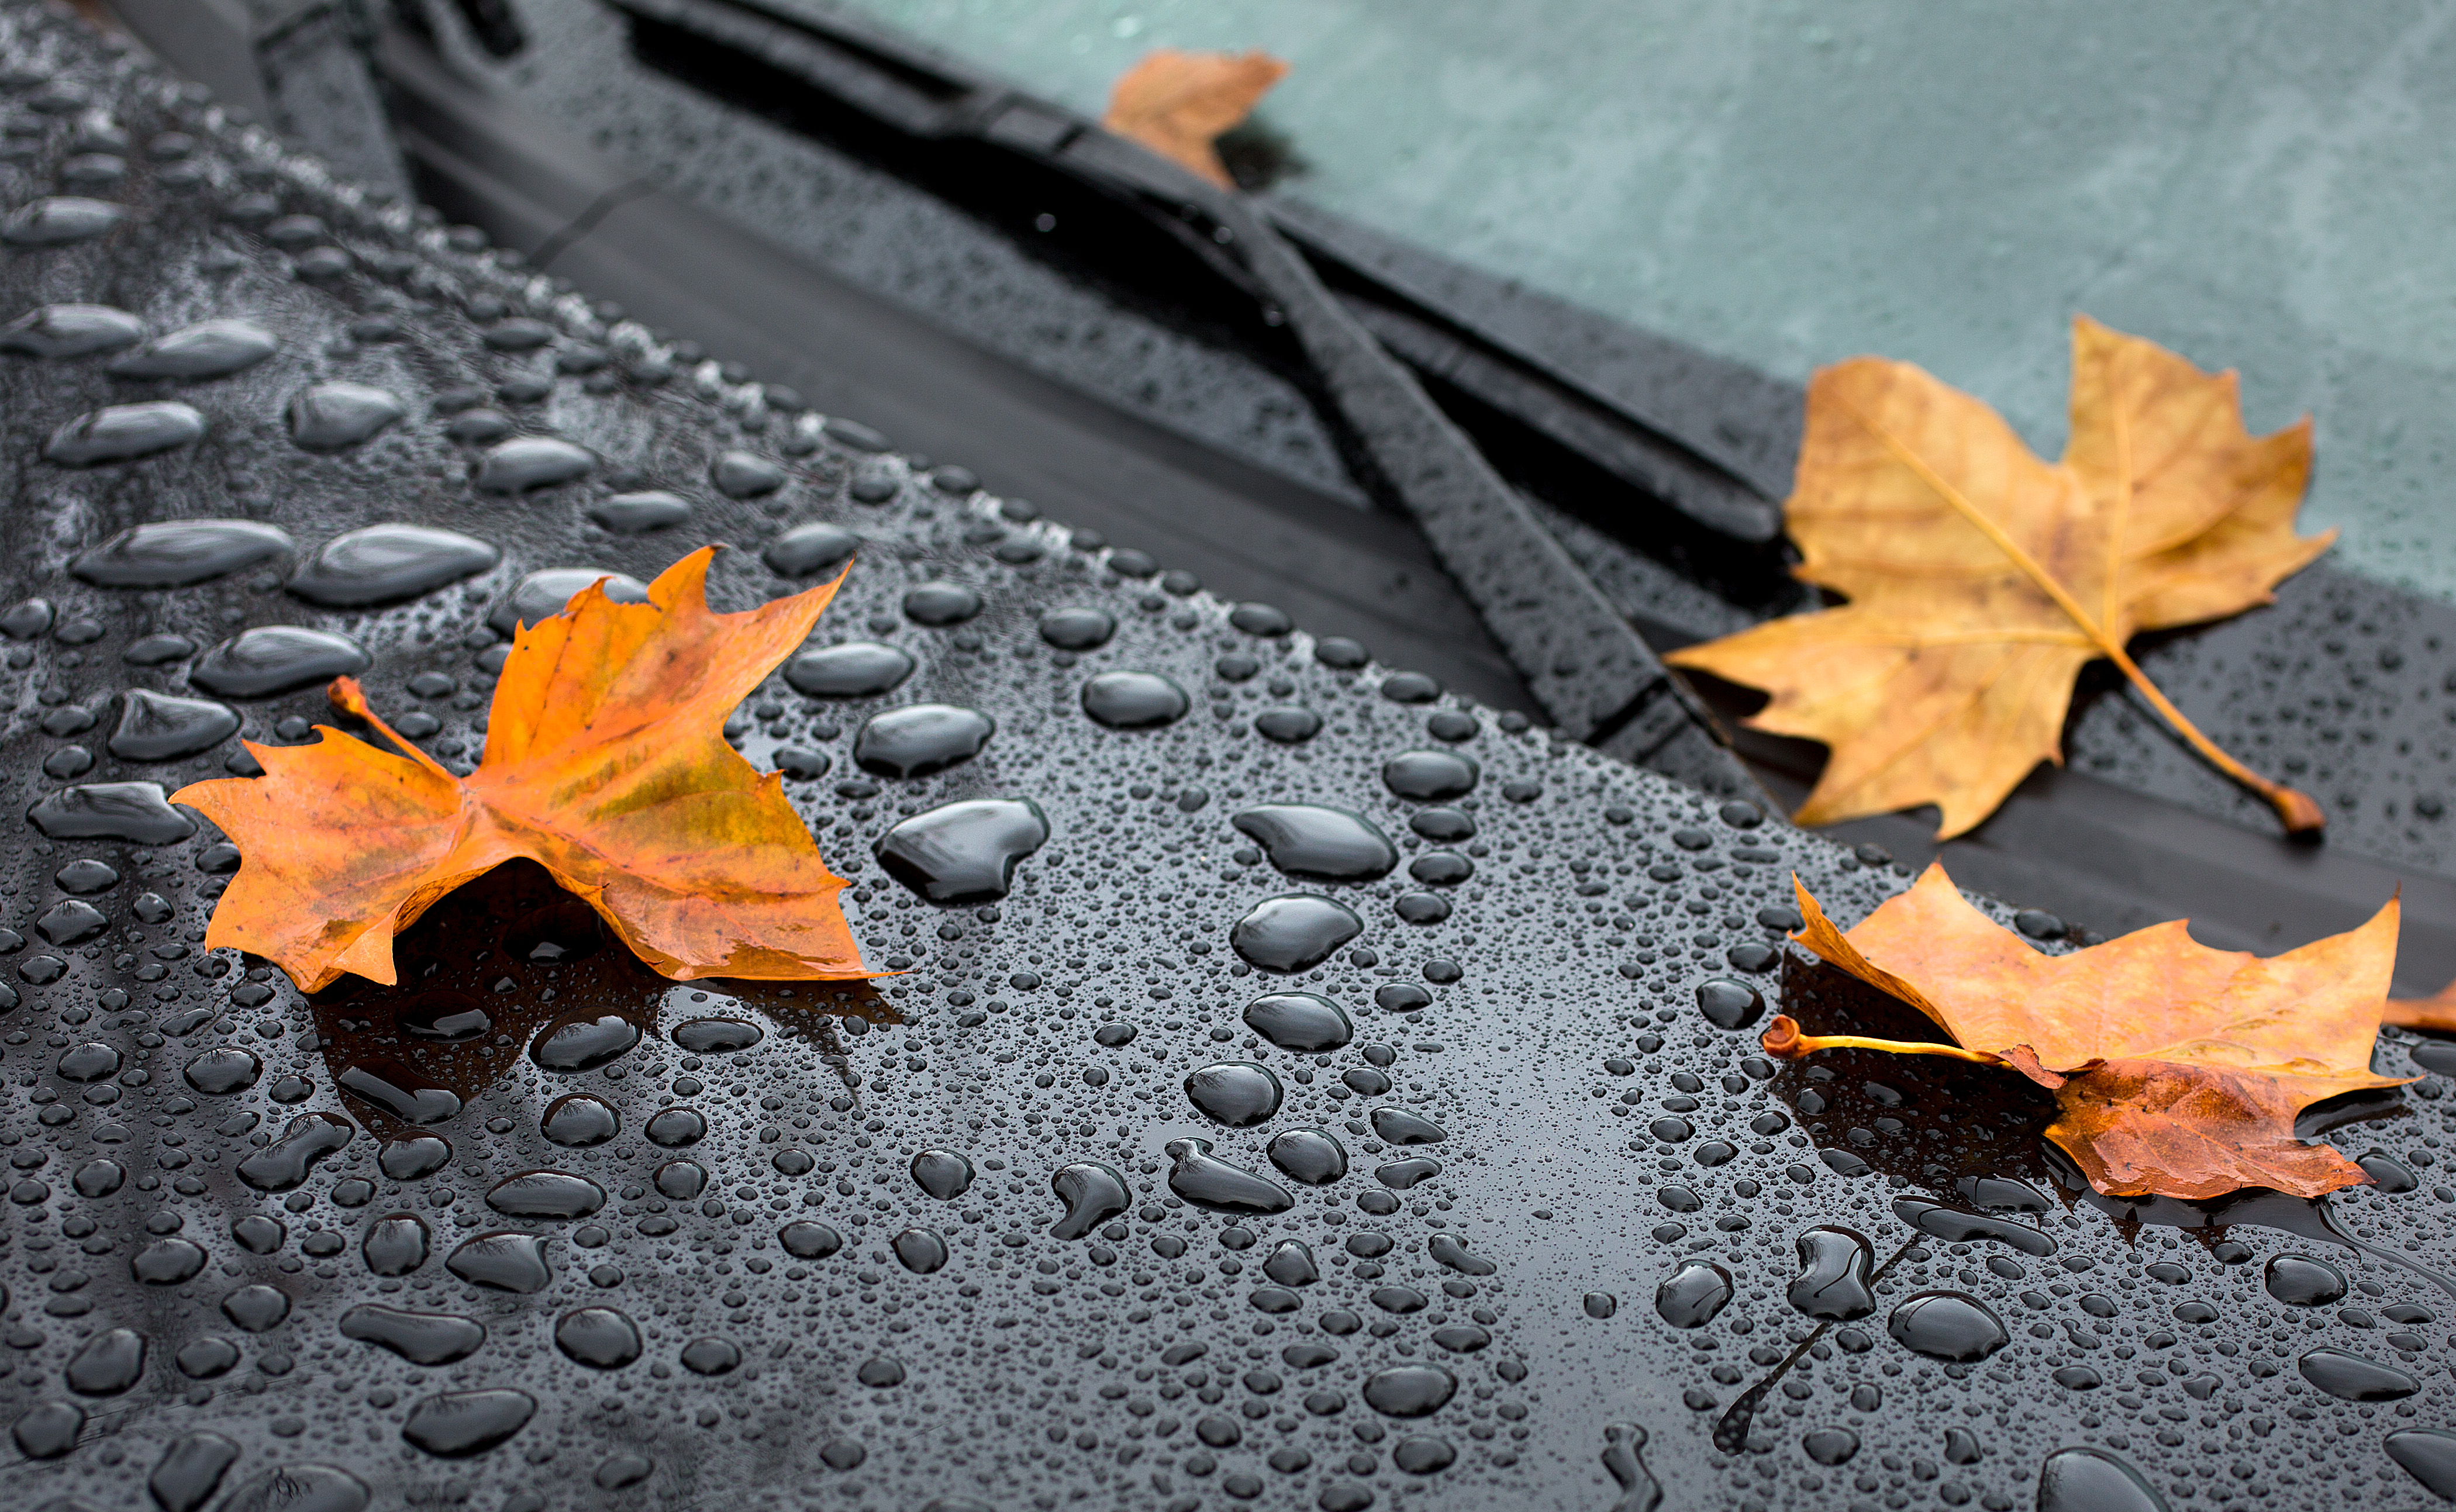 156978 download wallpaper Macro, Sheet, Leaf, Maple, Drops, Hood, Rain, Autumn screensavers and pictures for free